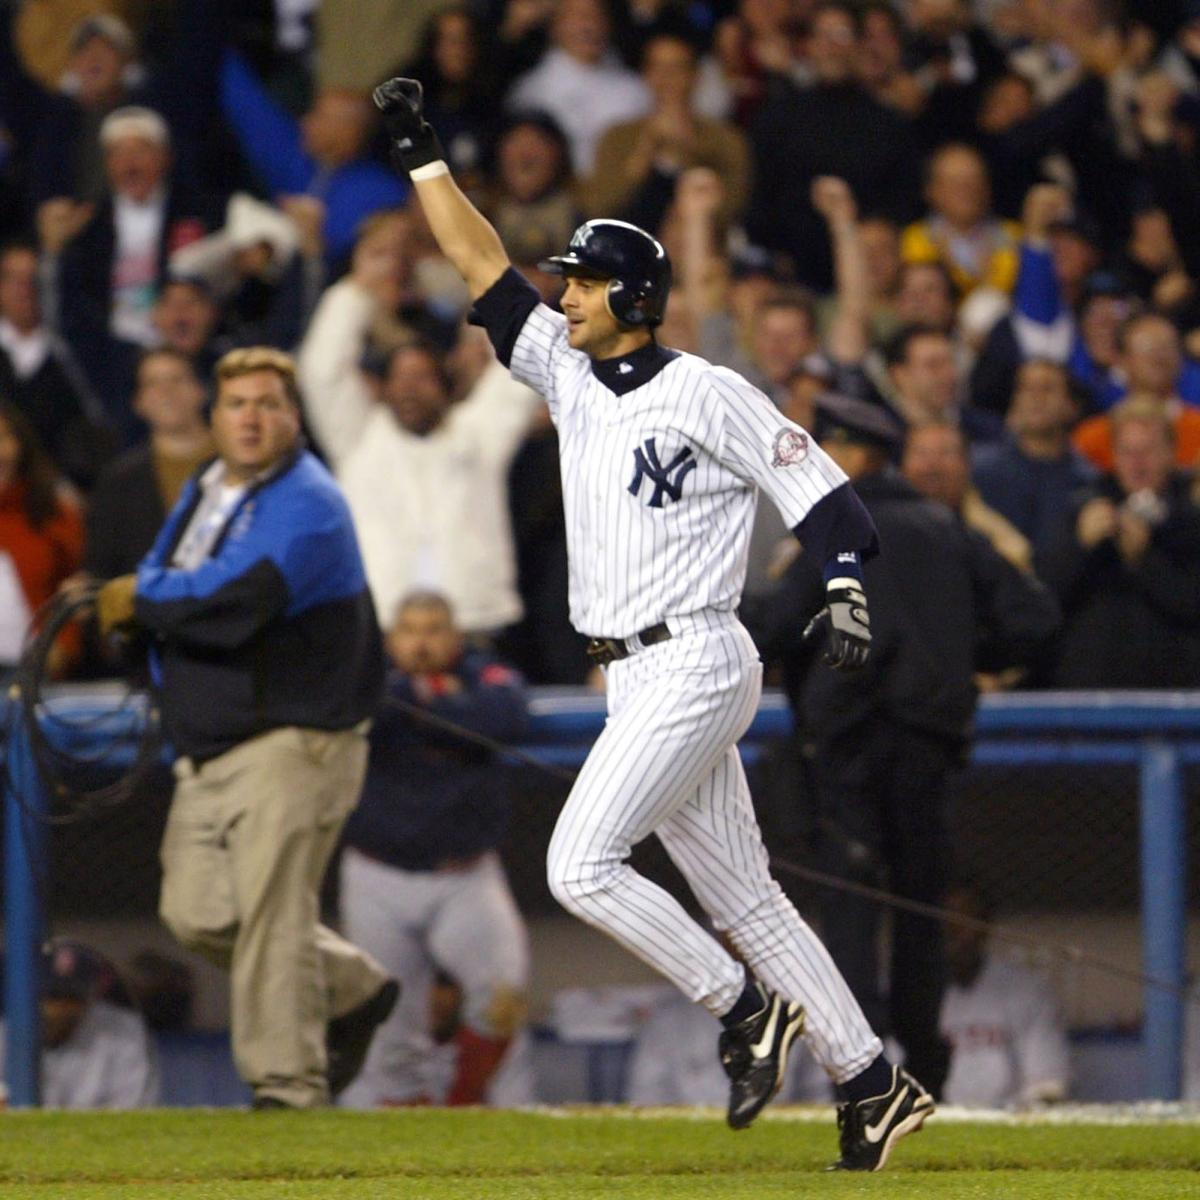 Ranking The 25 Greatest Moments In MLB League Championship Series